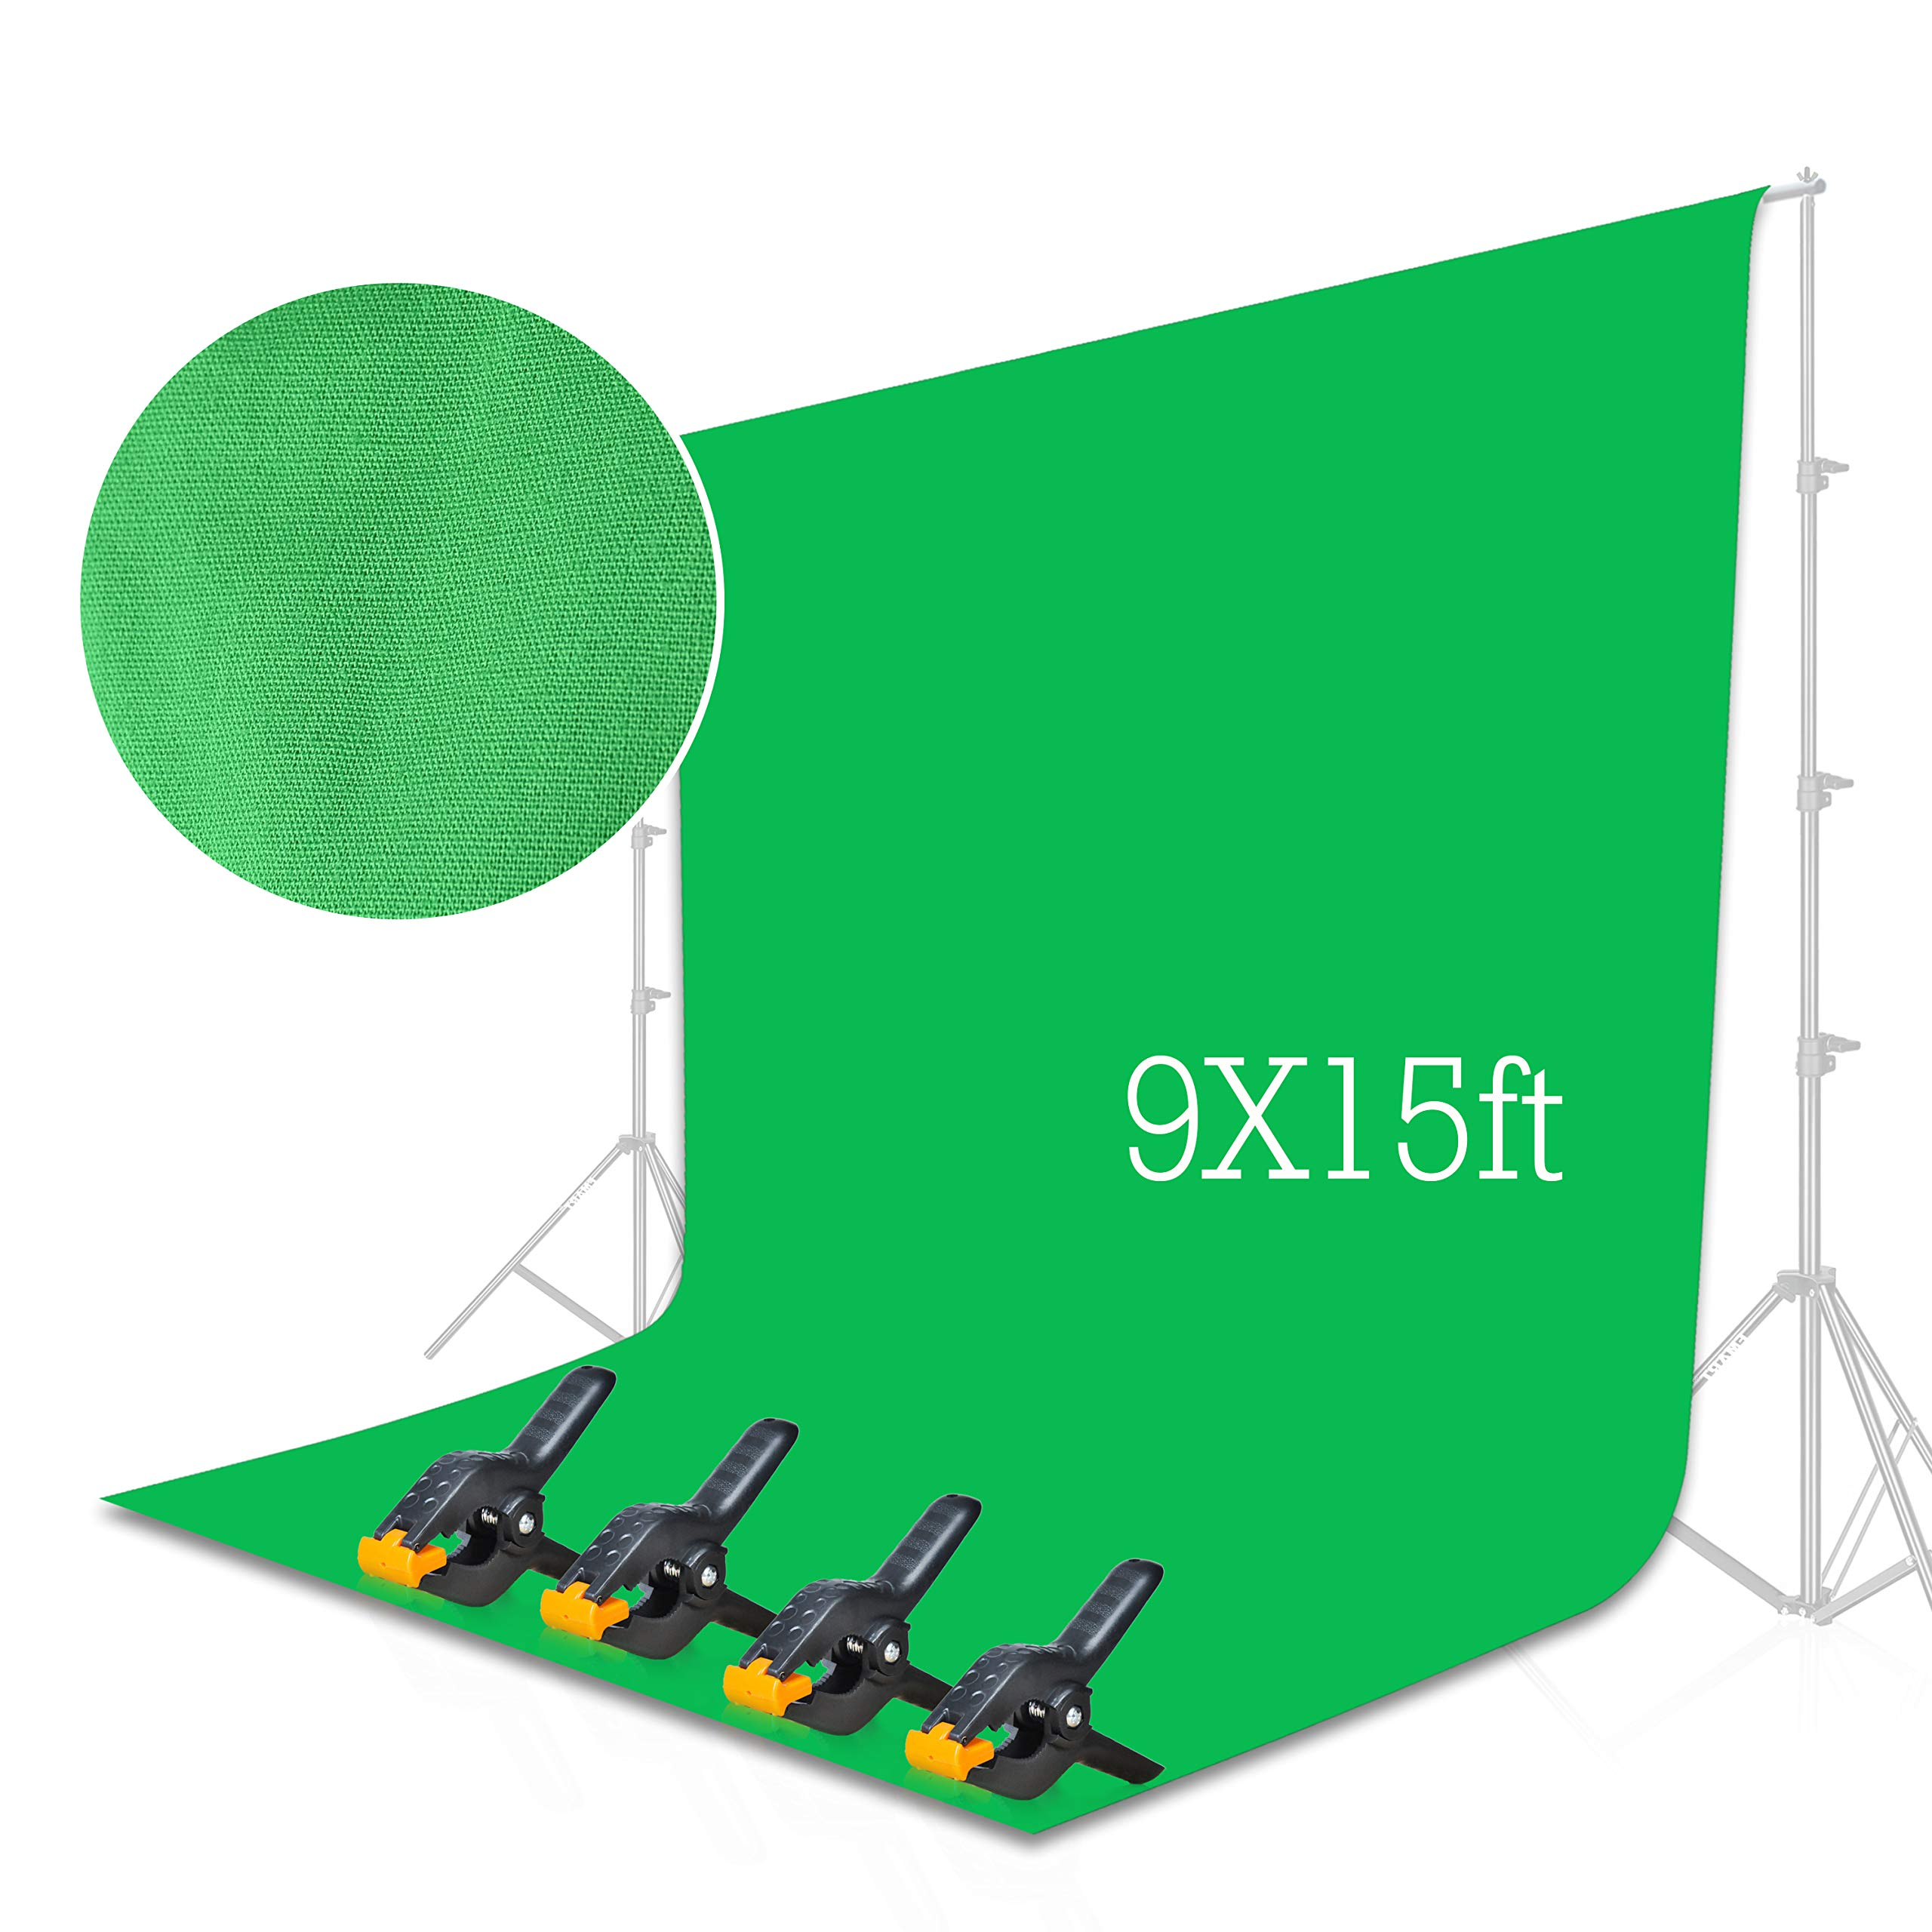 Emart Green Backdrop Background Screen 9 x 15 ft Muslin Photo Video Backdrop Studio, 4 x Backdrop Clamp Included by EMART